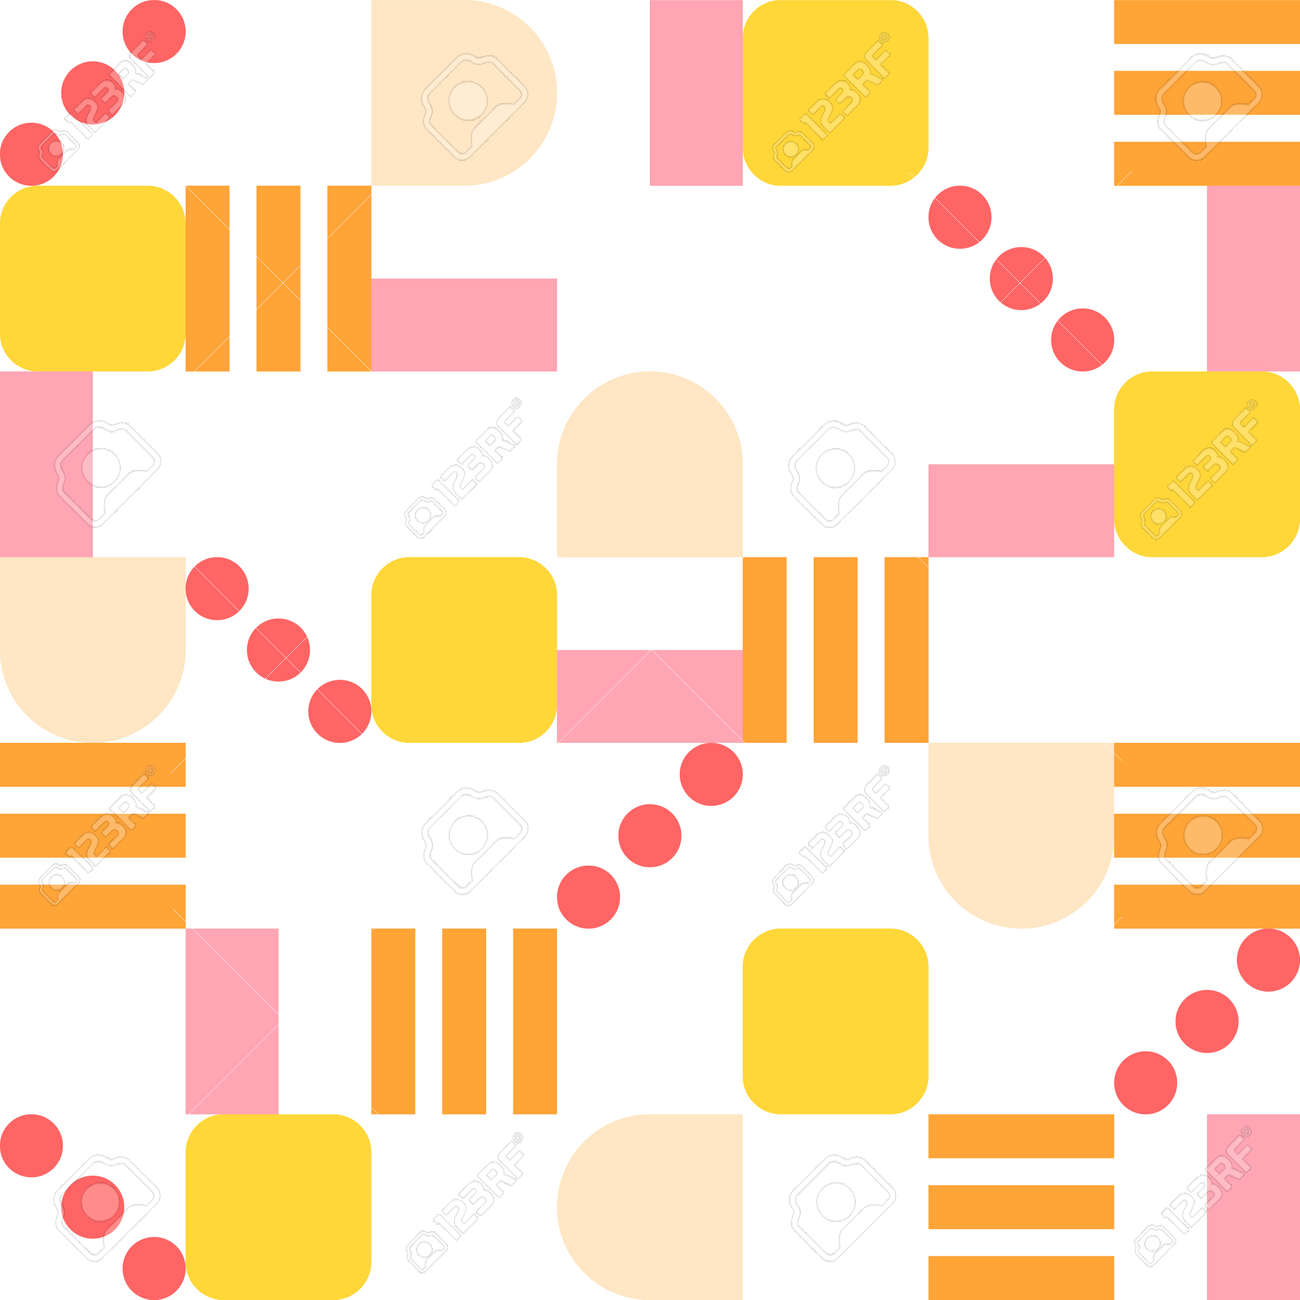 Orange-tone lines, dots, and square pieces of figure form a pattern. Simple pattern design template. - 172276096